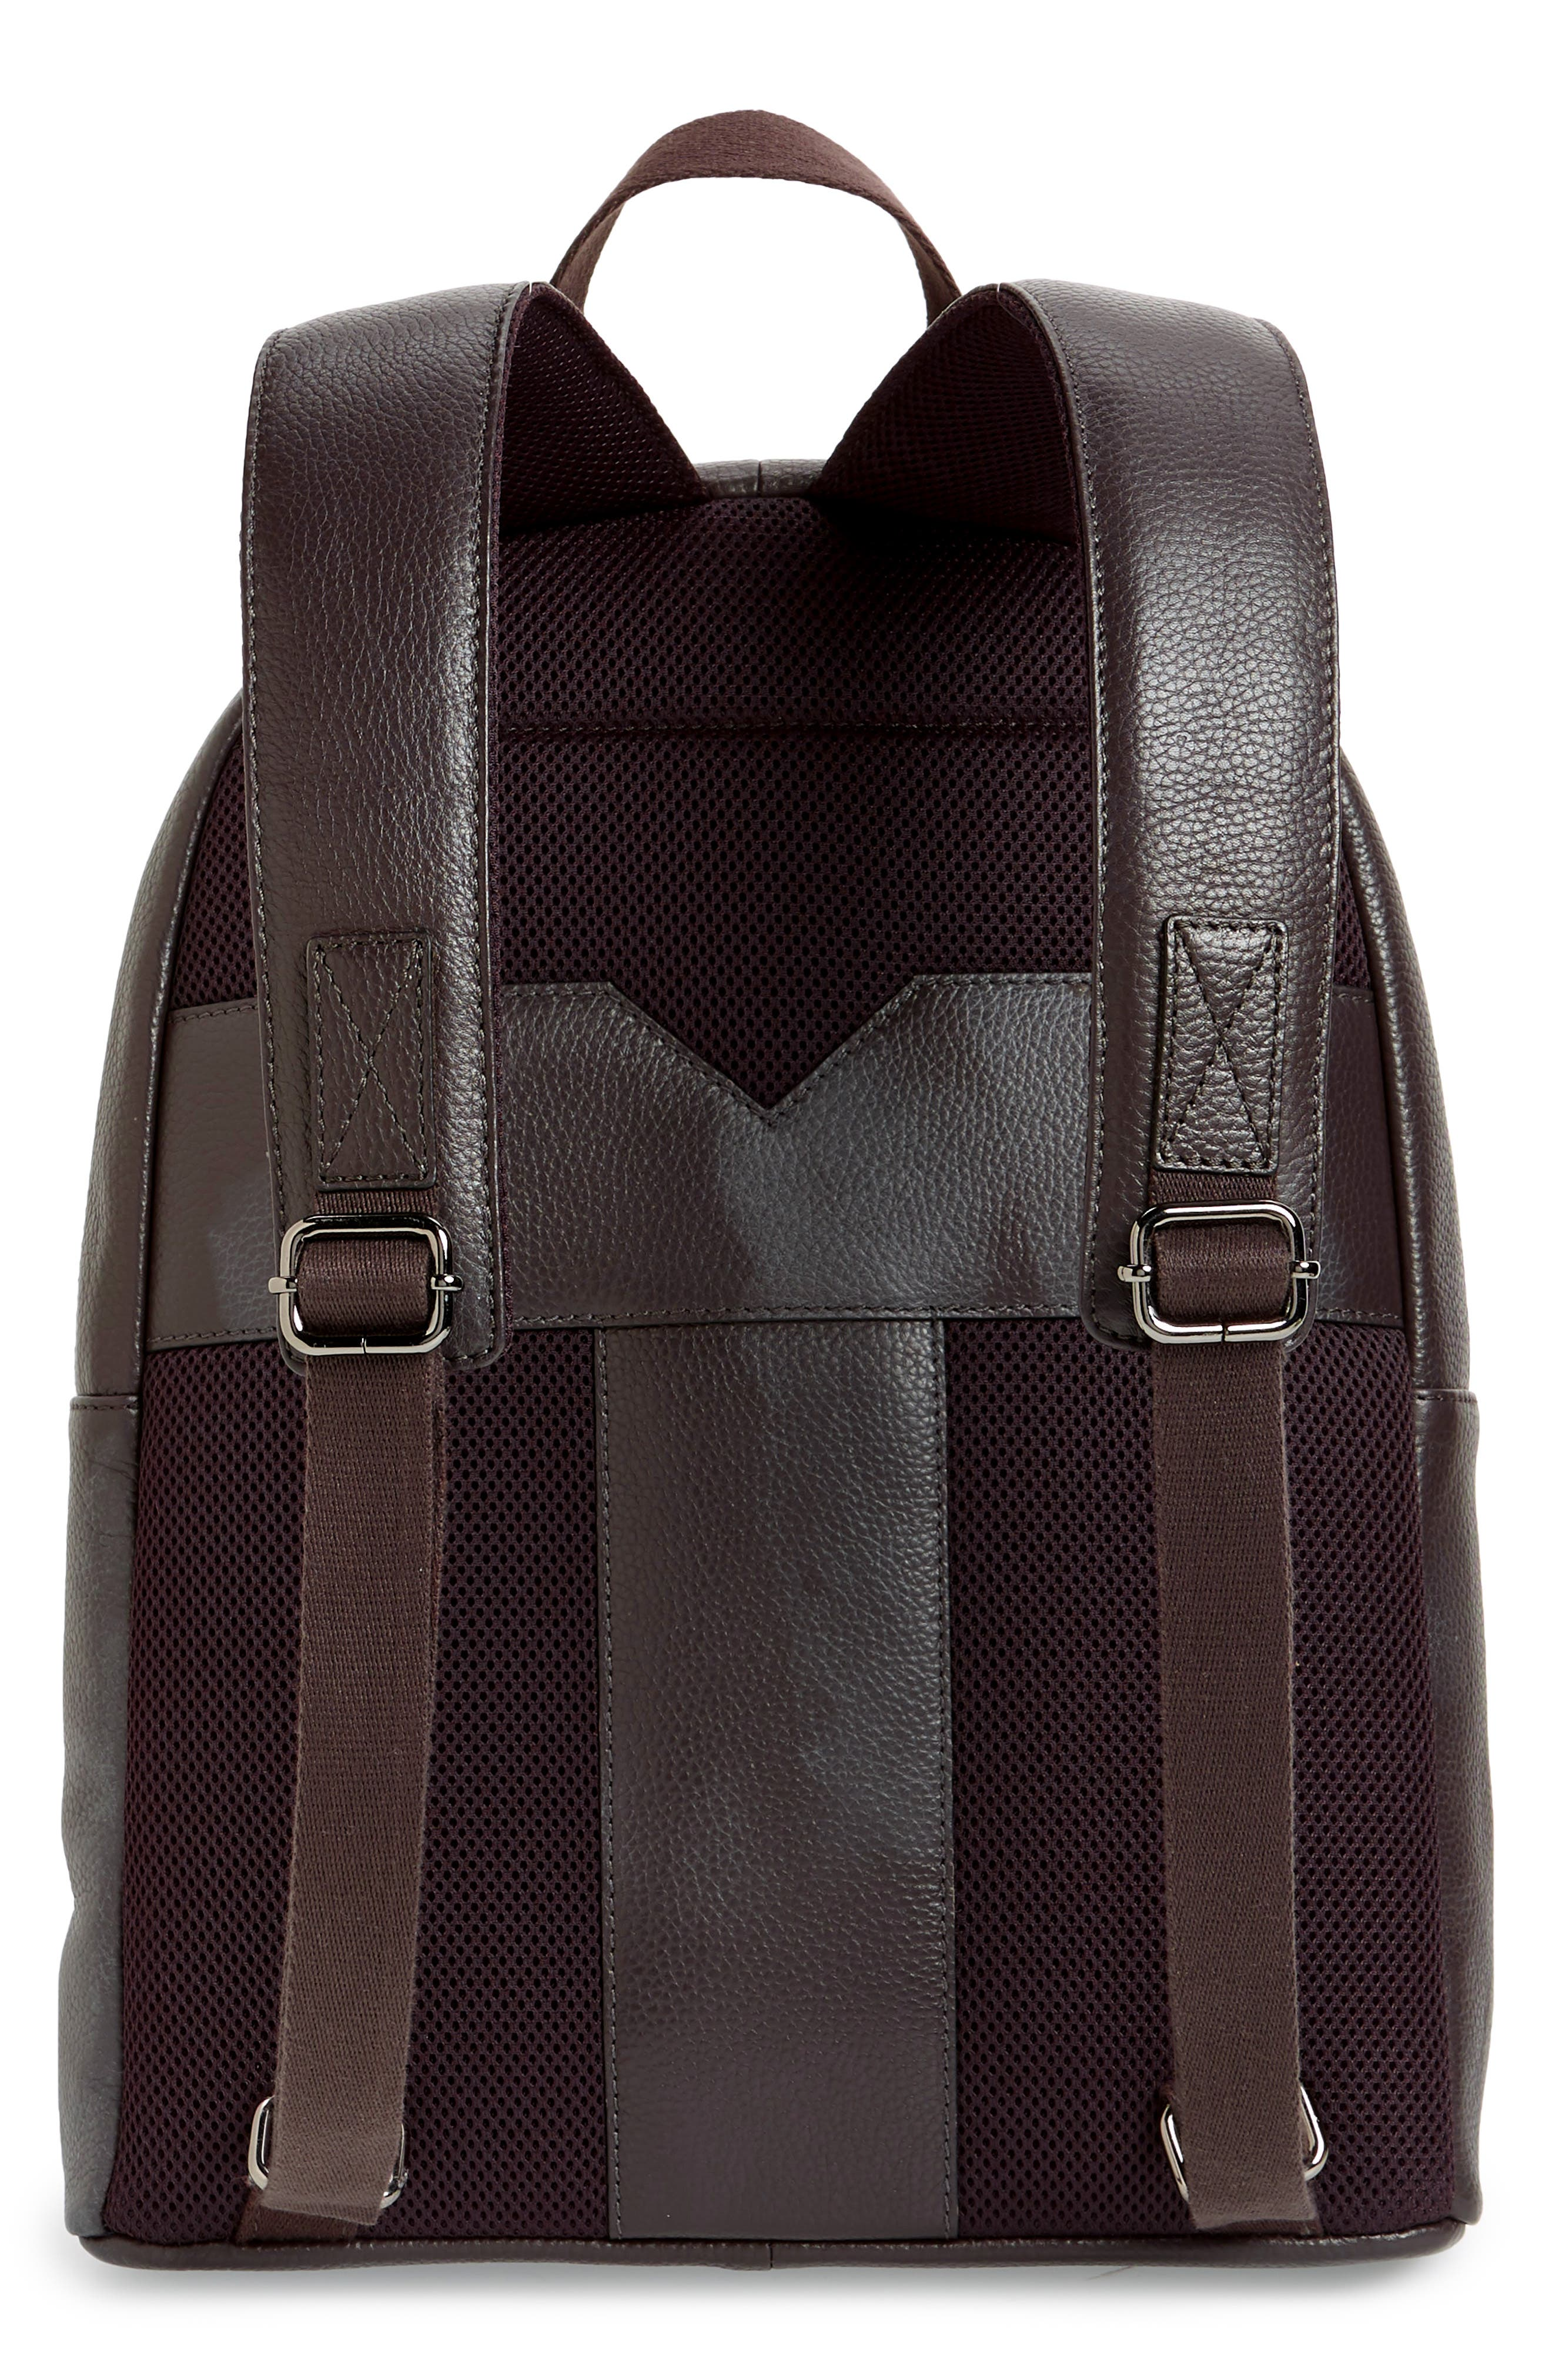 Leather Backpack,                             Alternate thumbnail 3, color,                             CHOCOLATE